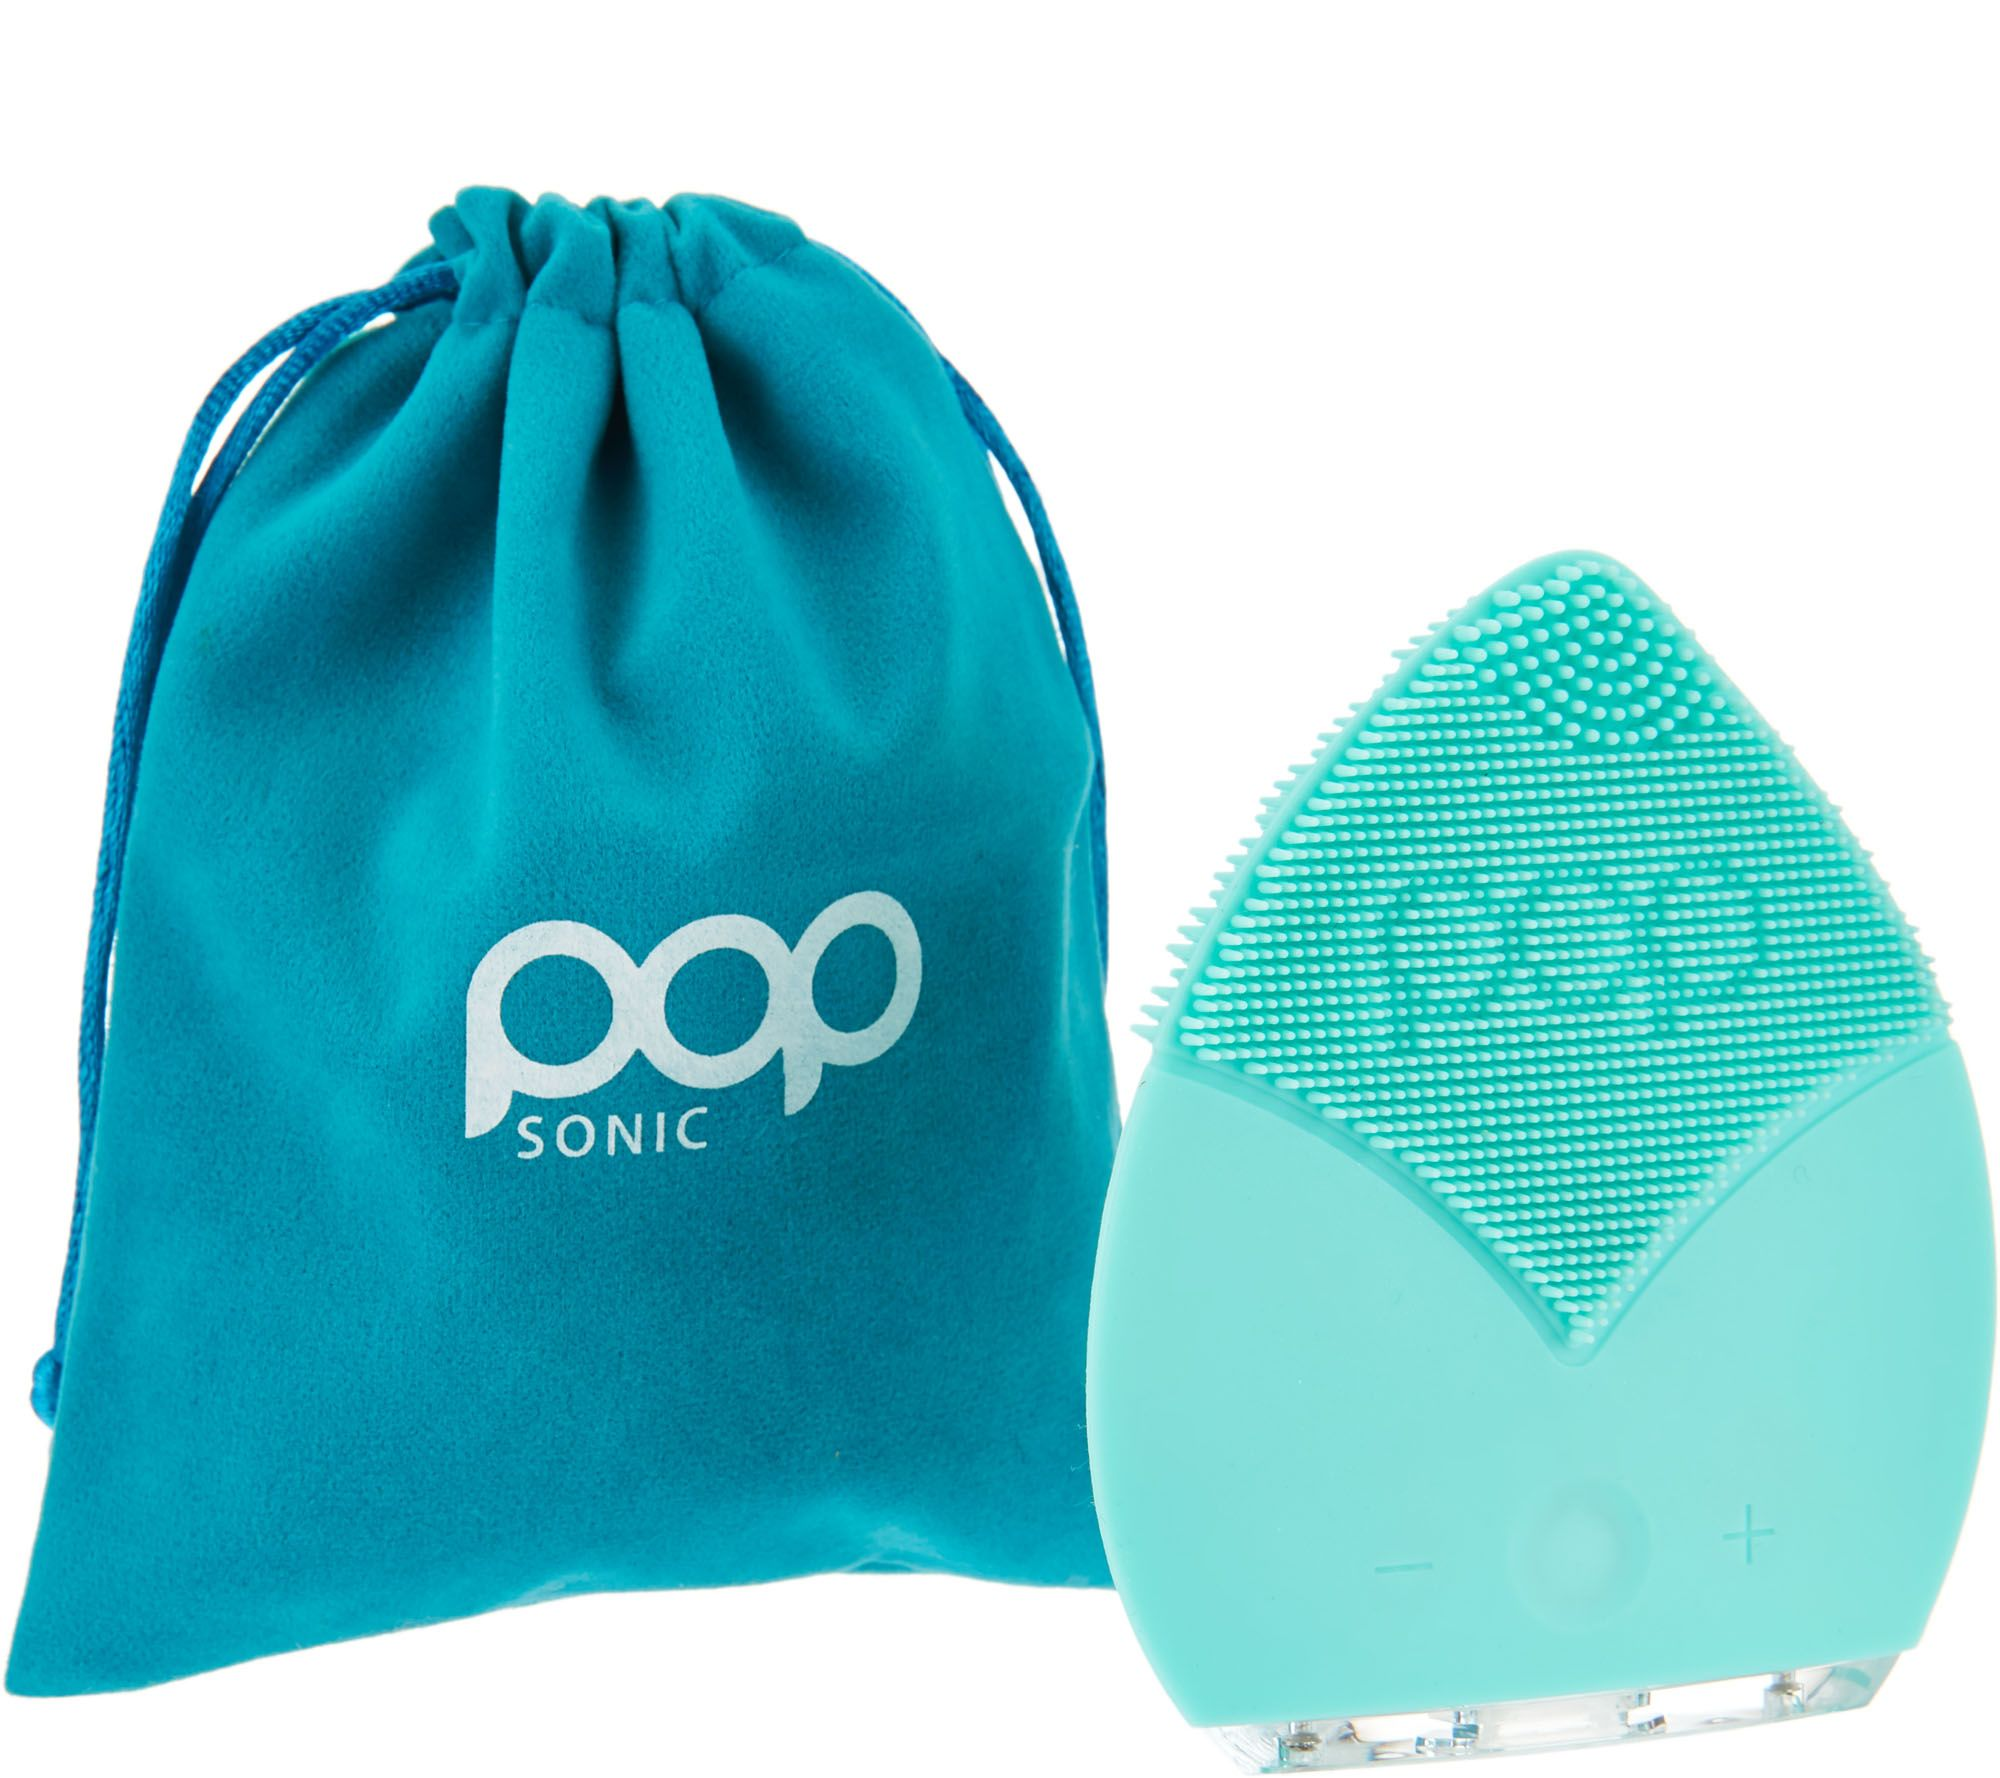 Blue apron qvc - Pop Sonic The Leaf Sonic Facial Cleansing Device A288316